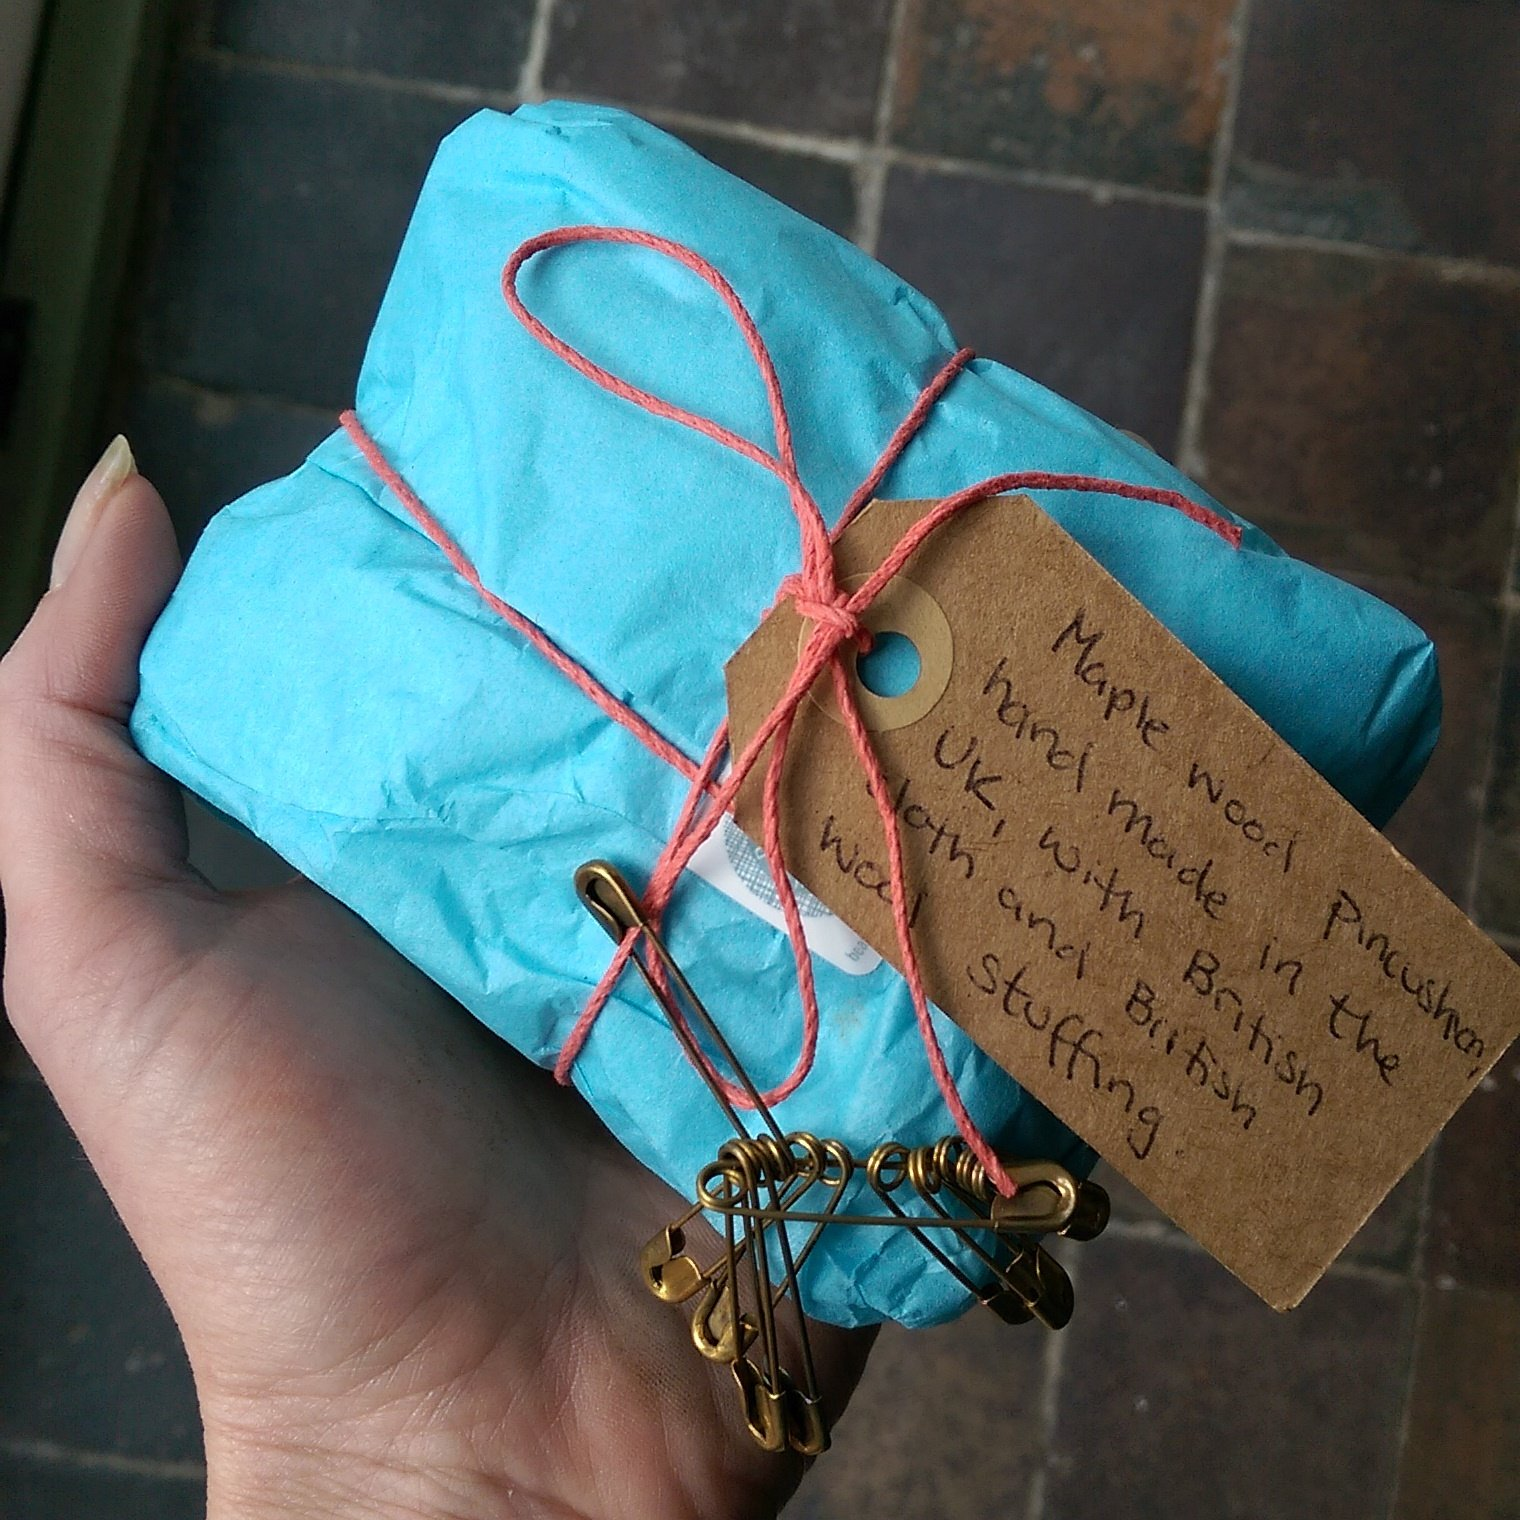 Beautifully packaged Wooden Pin Cushion from Beyond Measure